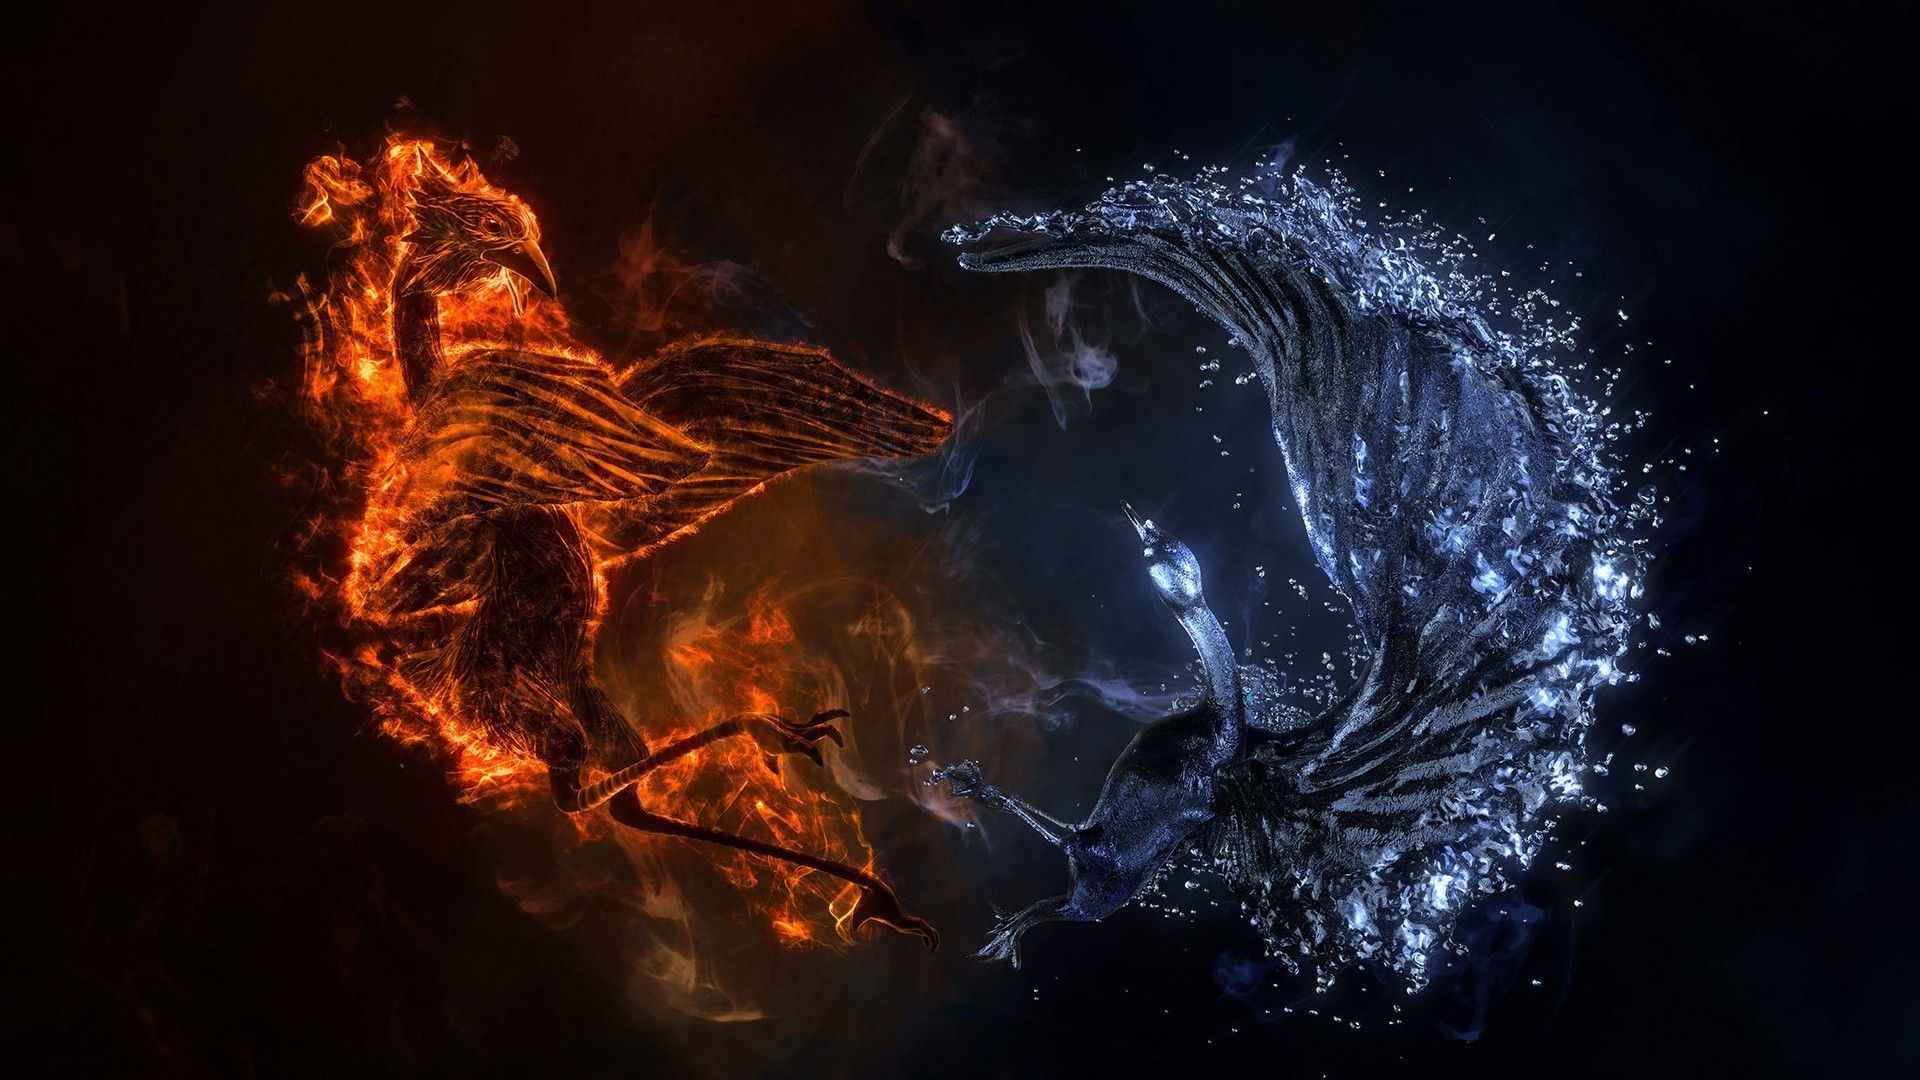 4K Phoenix Laptop Wallpaper